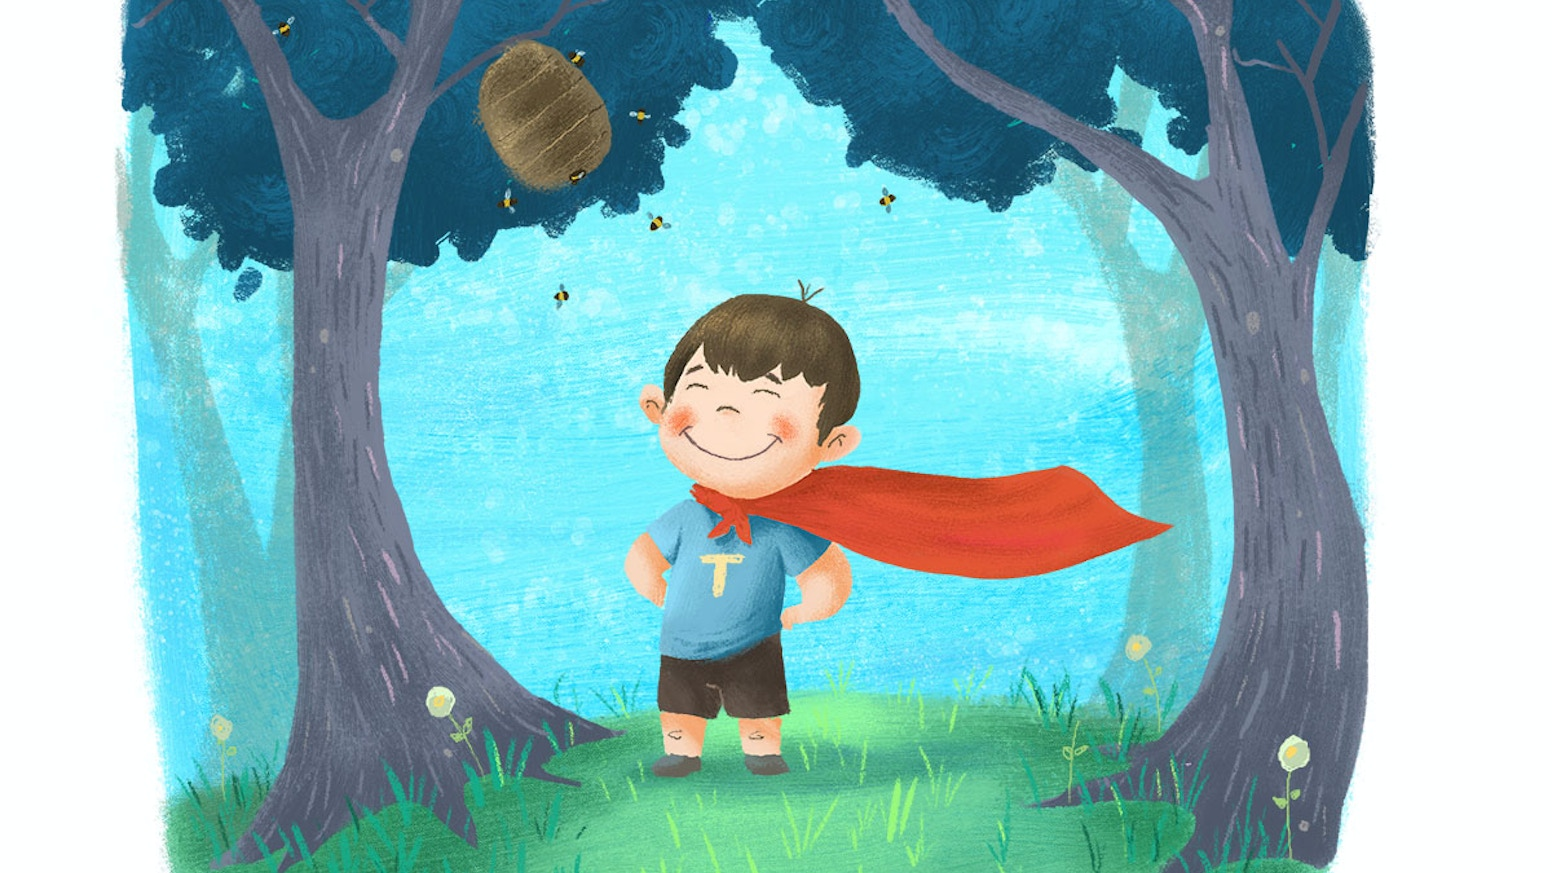 Stinky Toot Boy Saves the Day: A Children's Book on Bullying